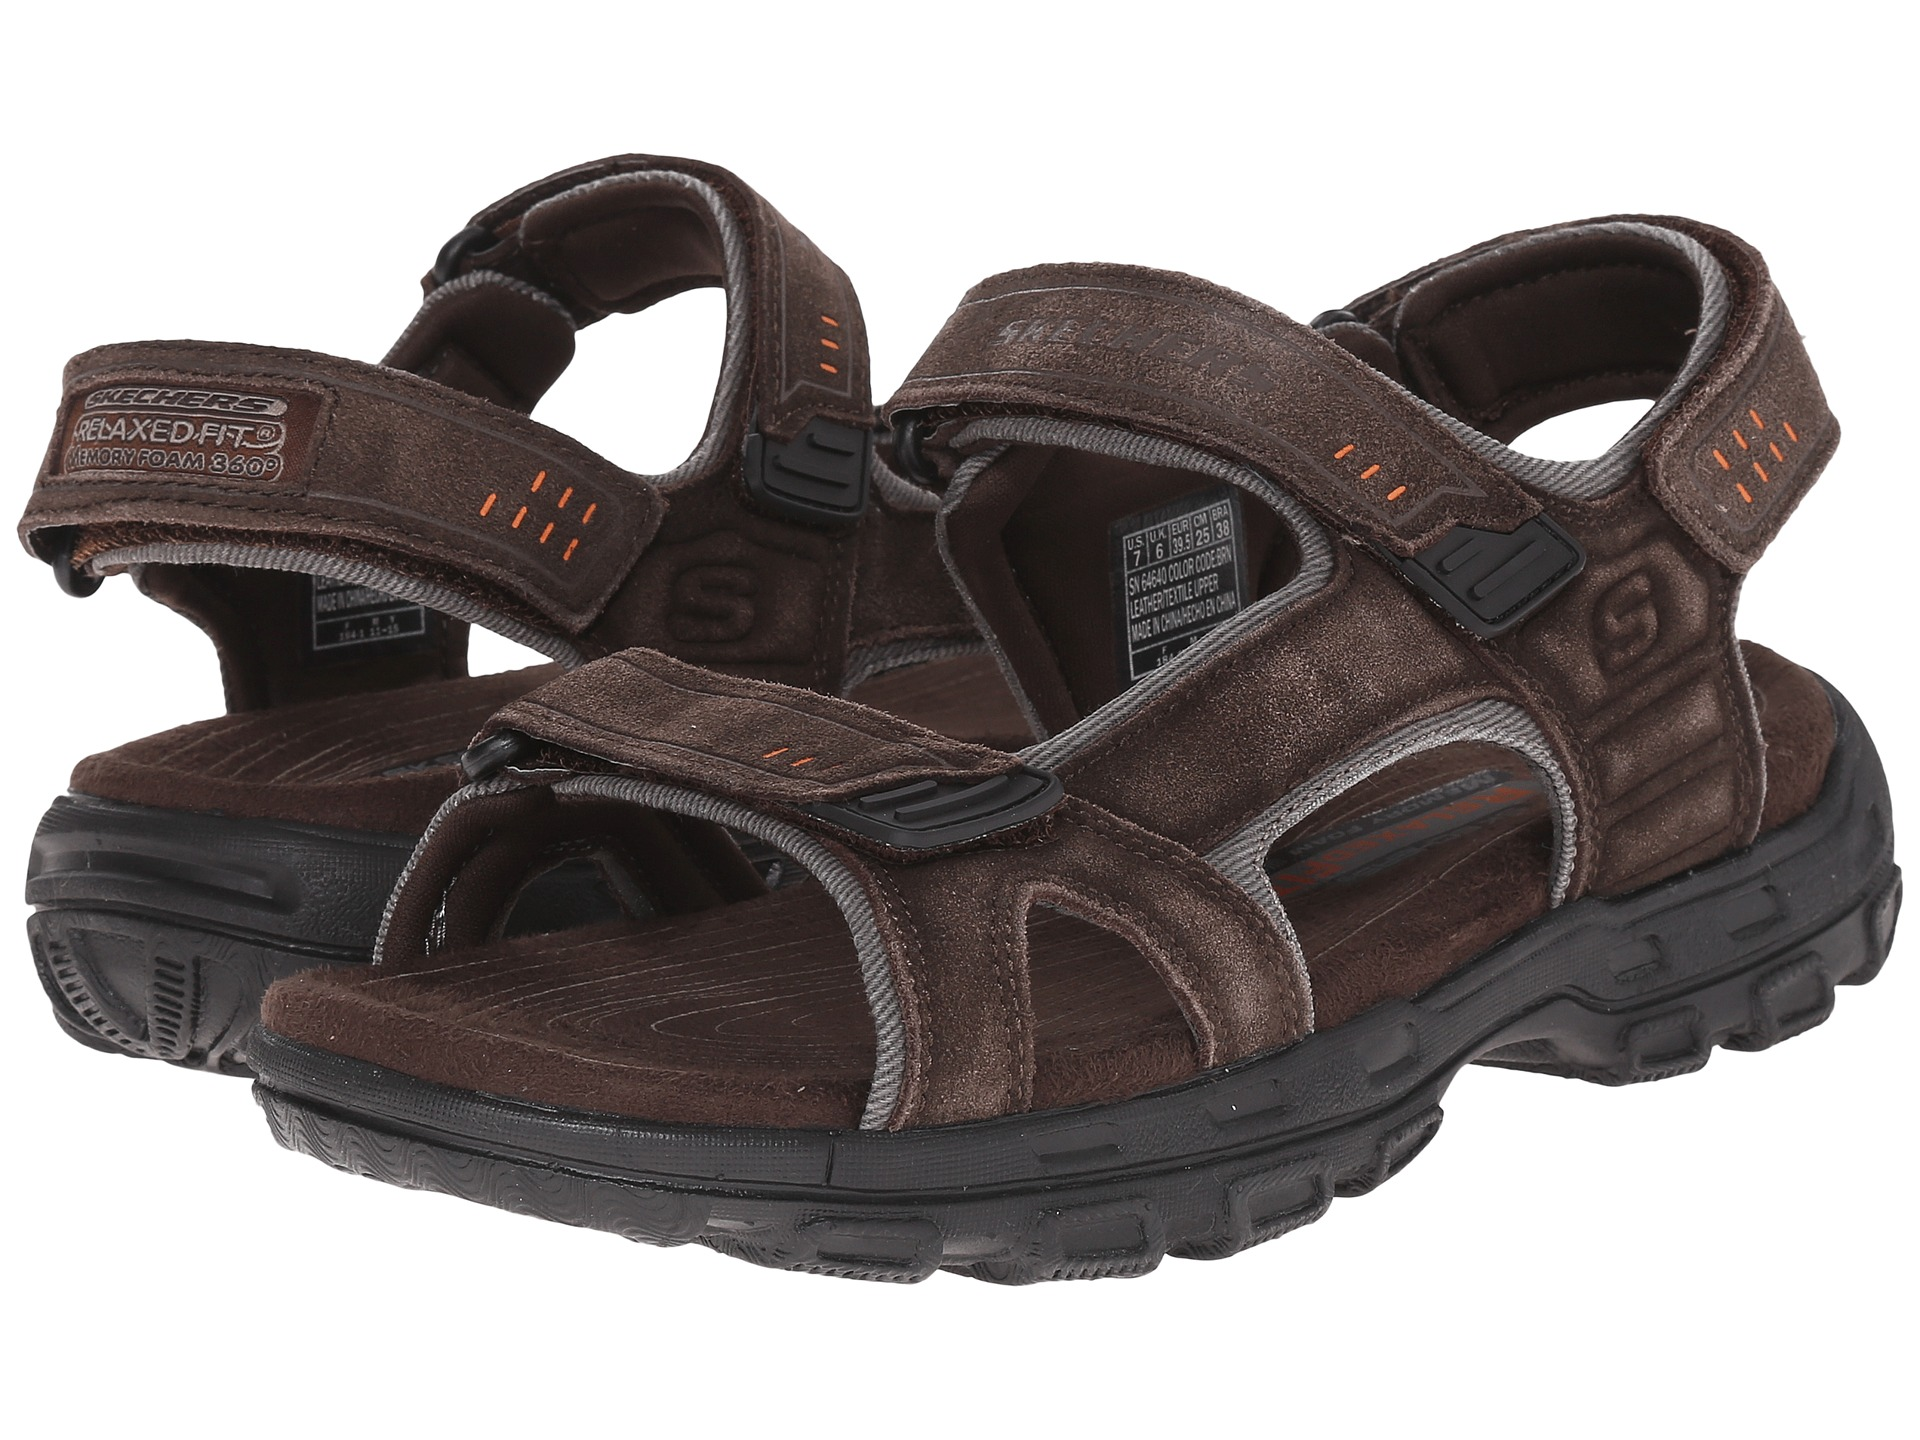 8fced5bccb80 skechers relaxed fit womens sandals sale   OFF63% Discounted